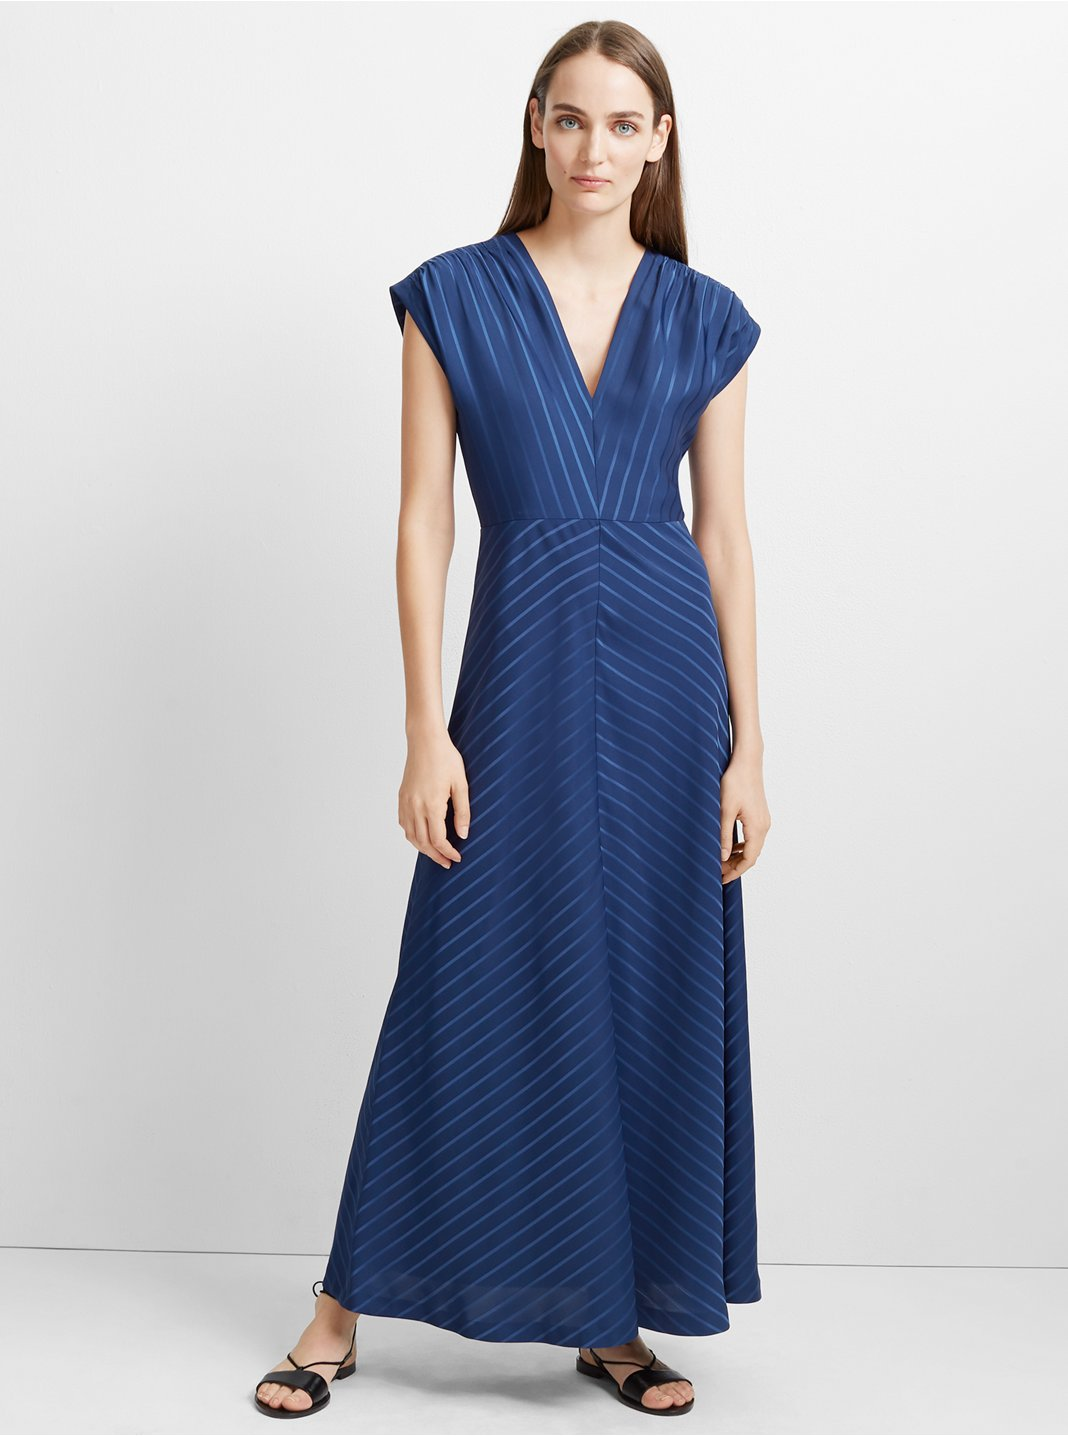 abeb1becf860 Womens Dresses | Club Monaco